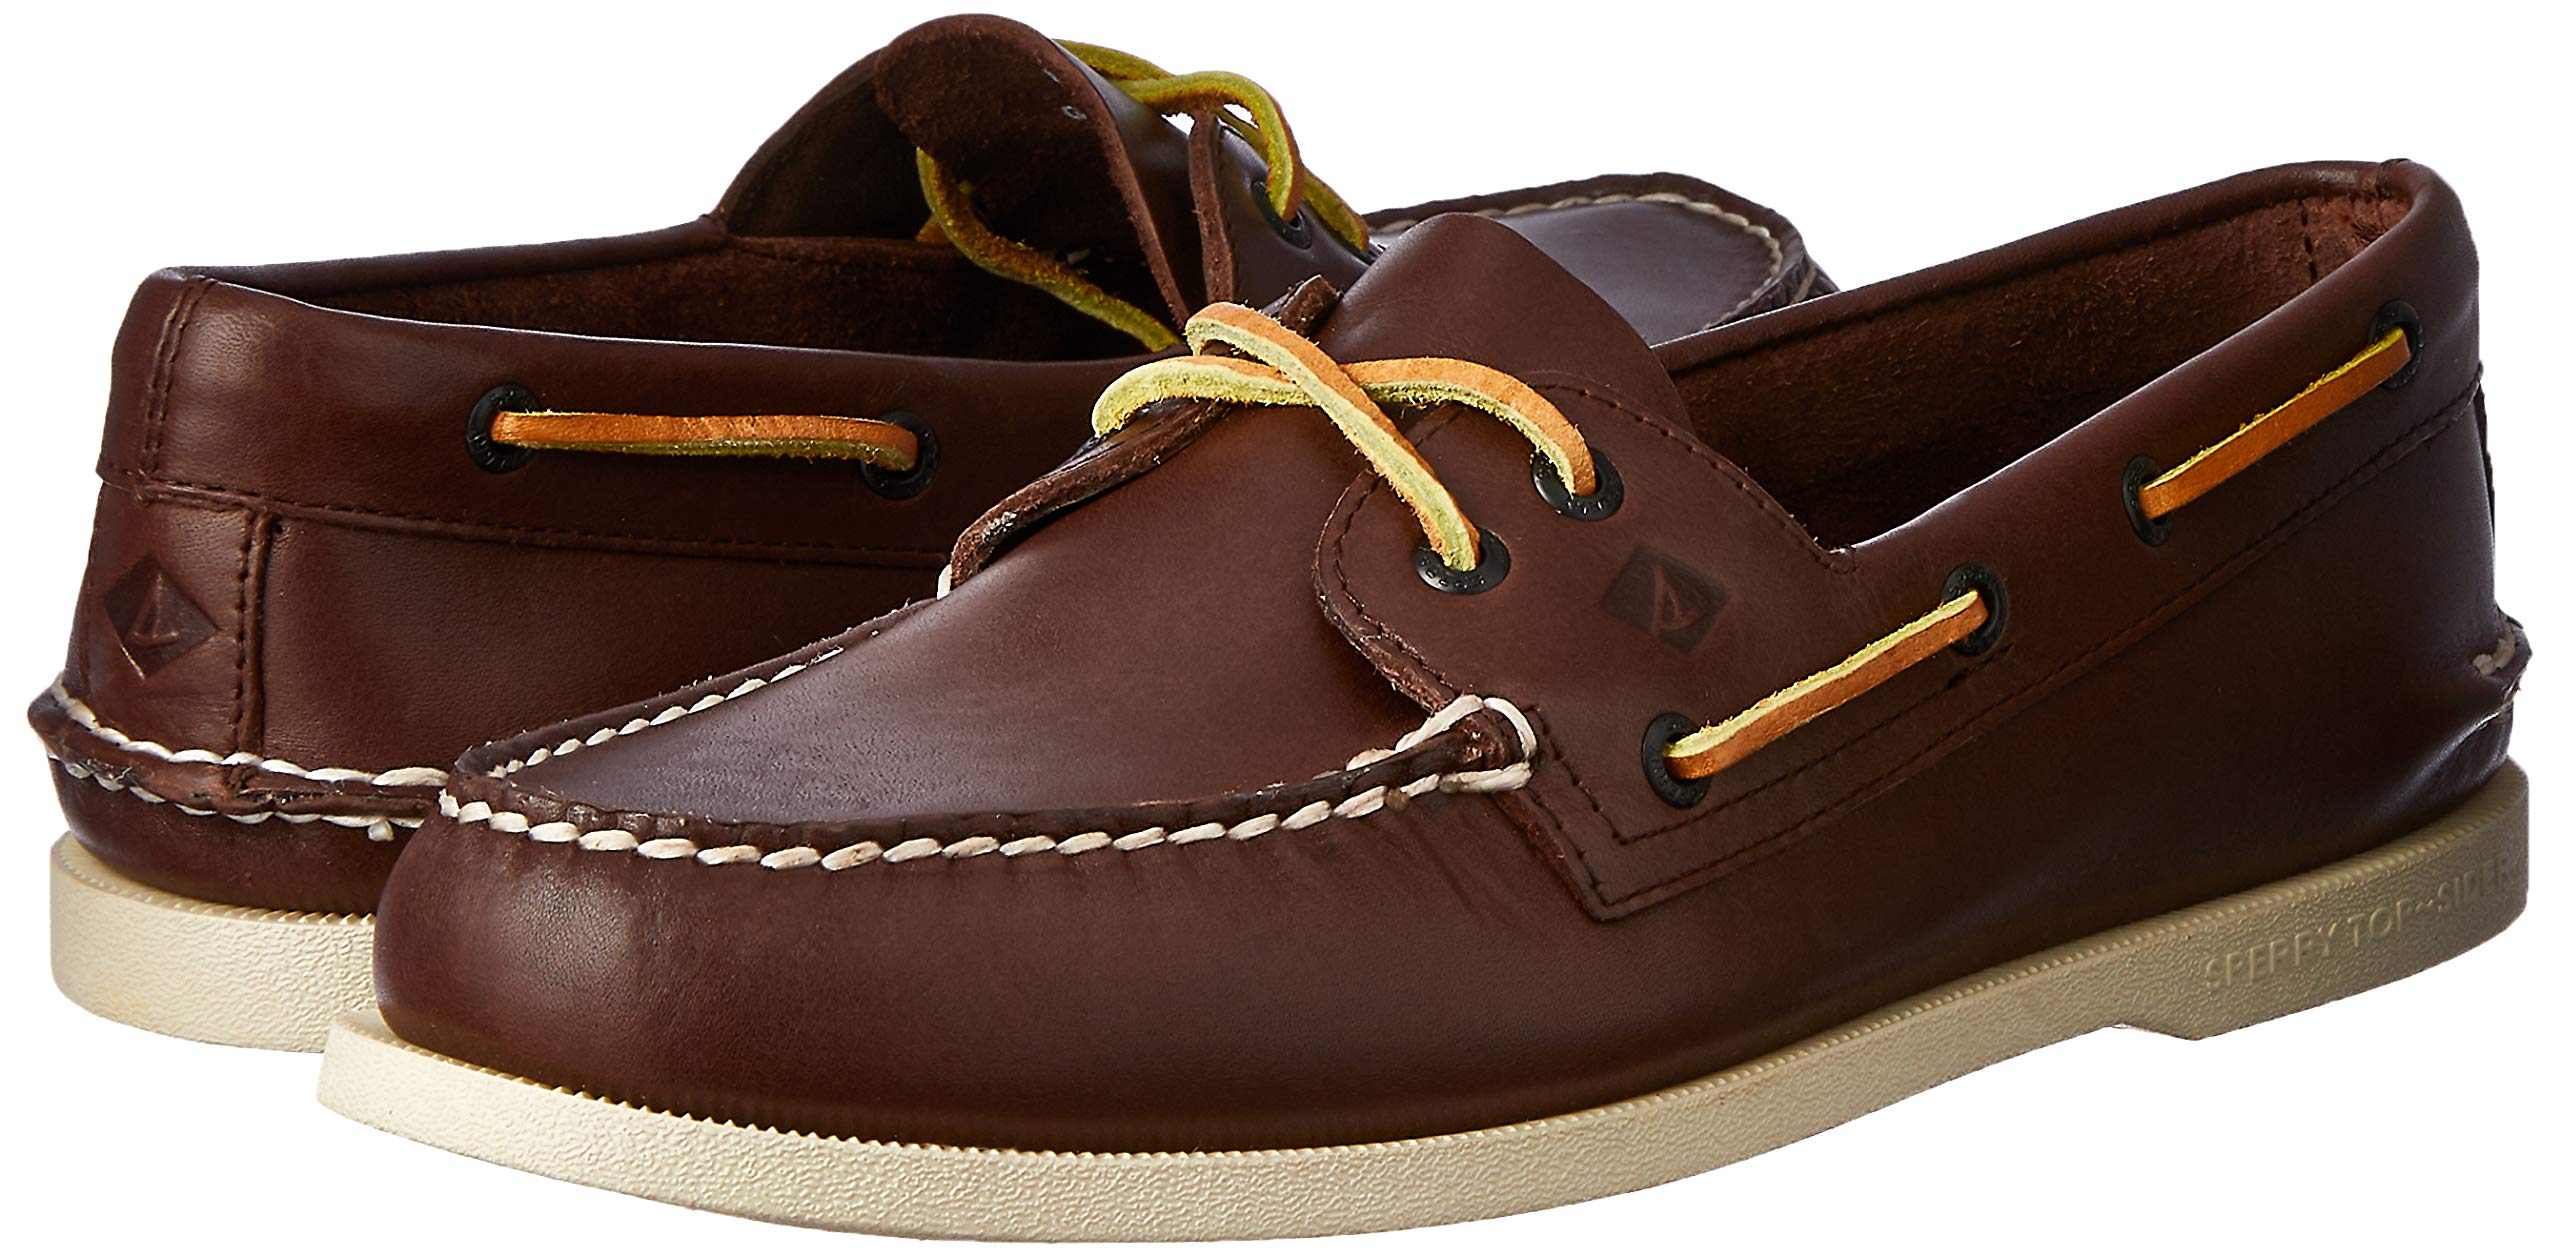 Sperry Men's A/O 2 Eye Boat Shoe,Brown,11.5 M US by SPERRY (Image #6)